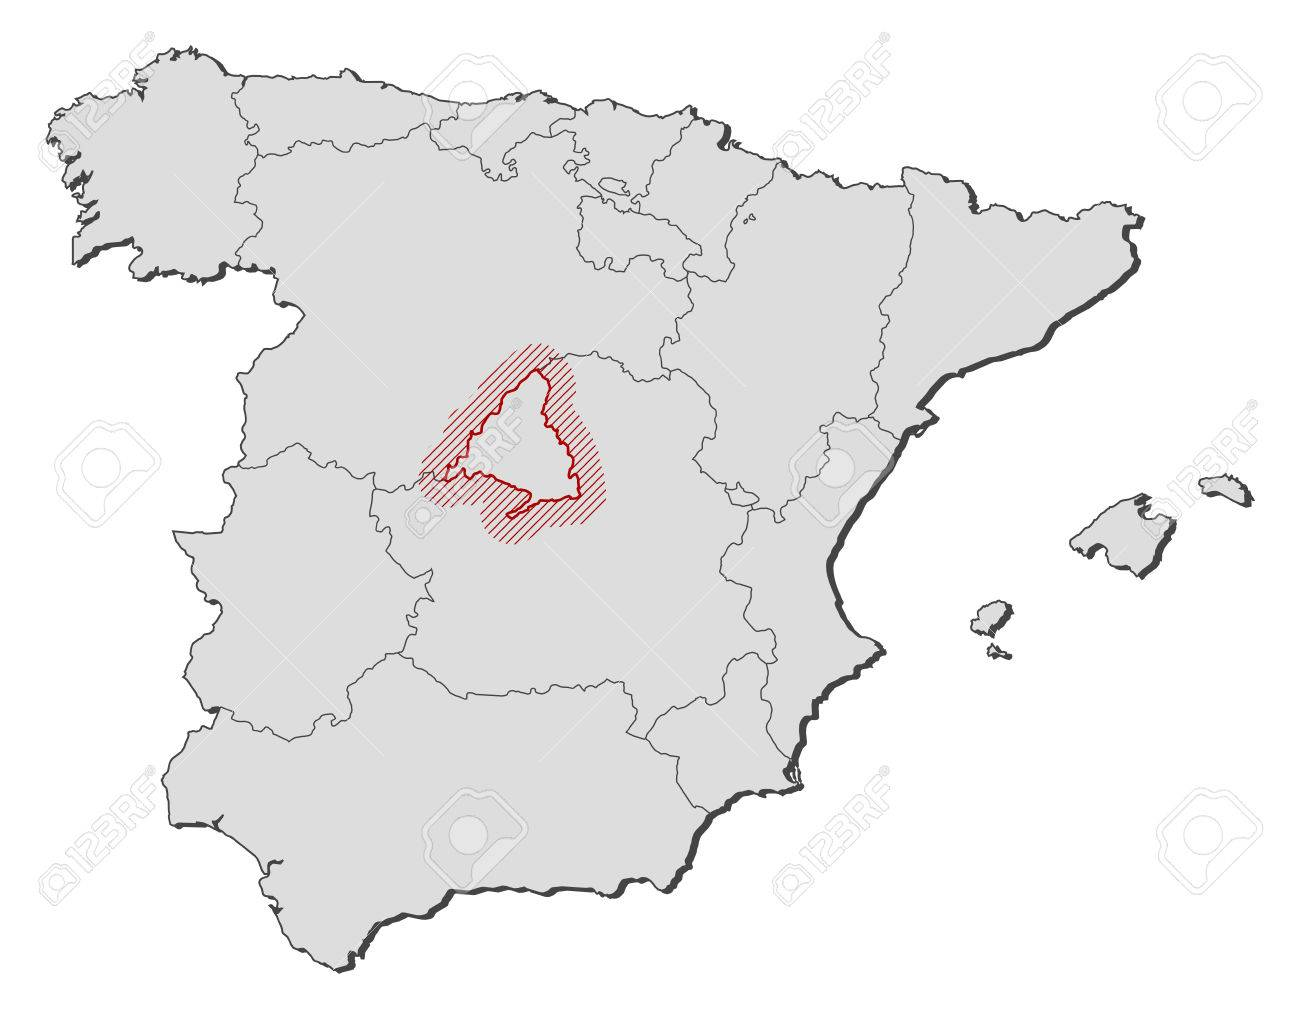 Map Of Spain With Madrid.Map Of Spain With The Provinces Madrid Is Highlighted By A Hatching